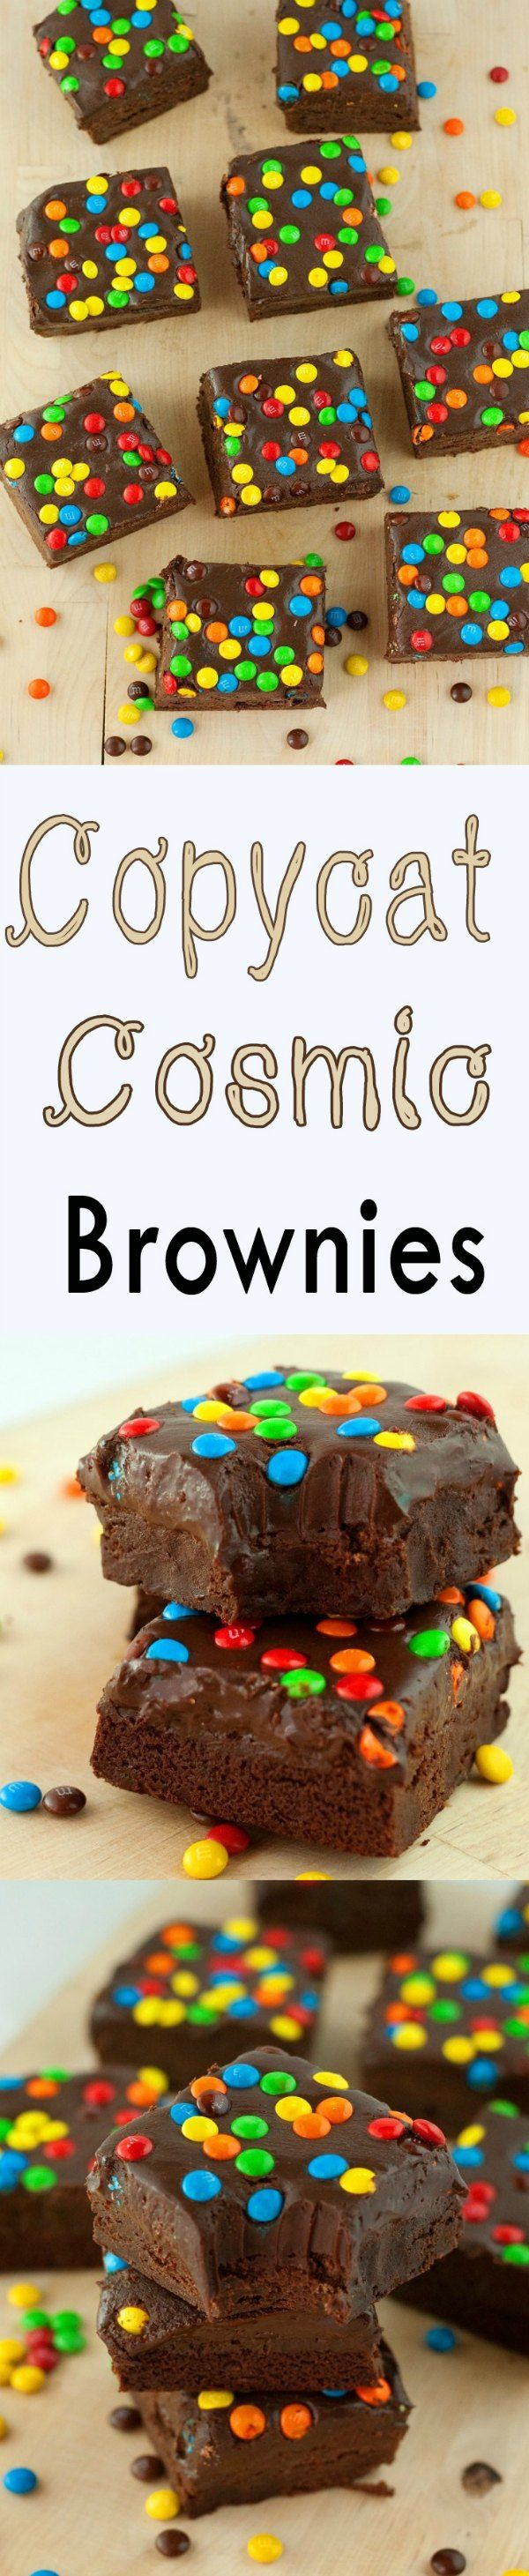 Copycat Cosmic Brownies: Thick, fudgy brownies smothered in silky smooth chocolate ganache, and topped with M&M candies. #recipe